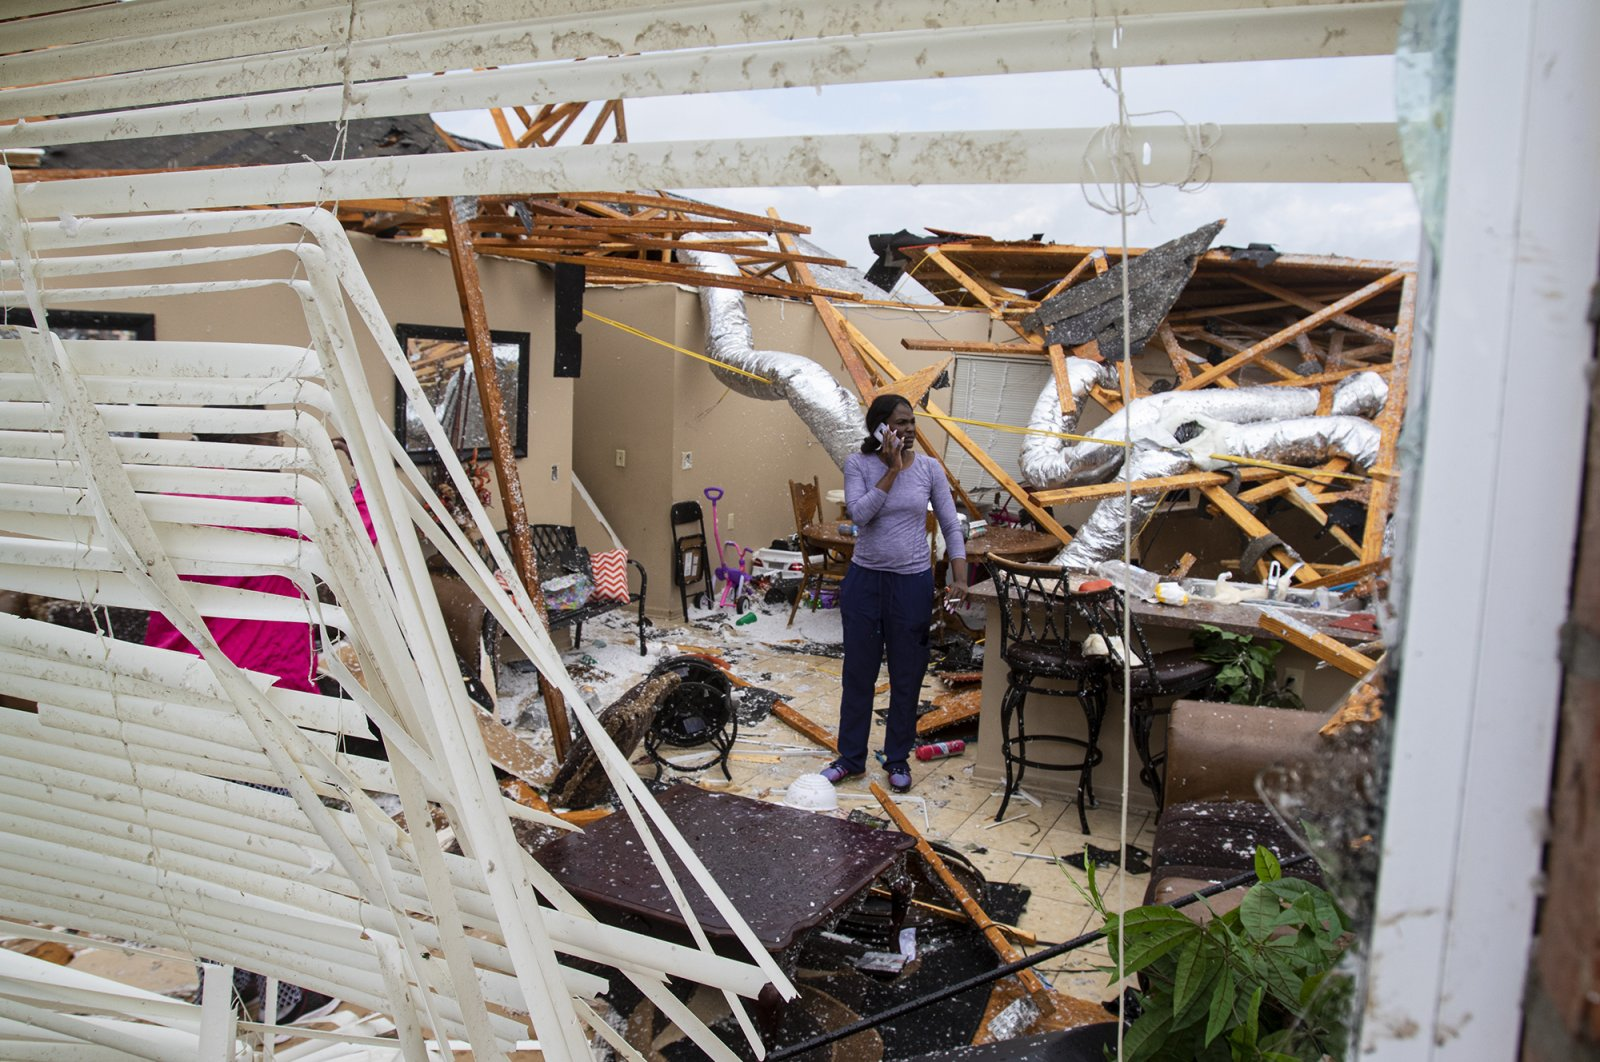 Rolanda Robinson calls family and friends from her brother's damaged home in Monroe, La. after a tornado ripped through the town on Sunday, April 12, 2020. (AP Photo)